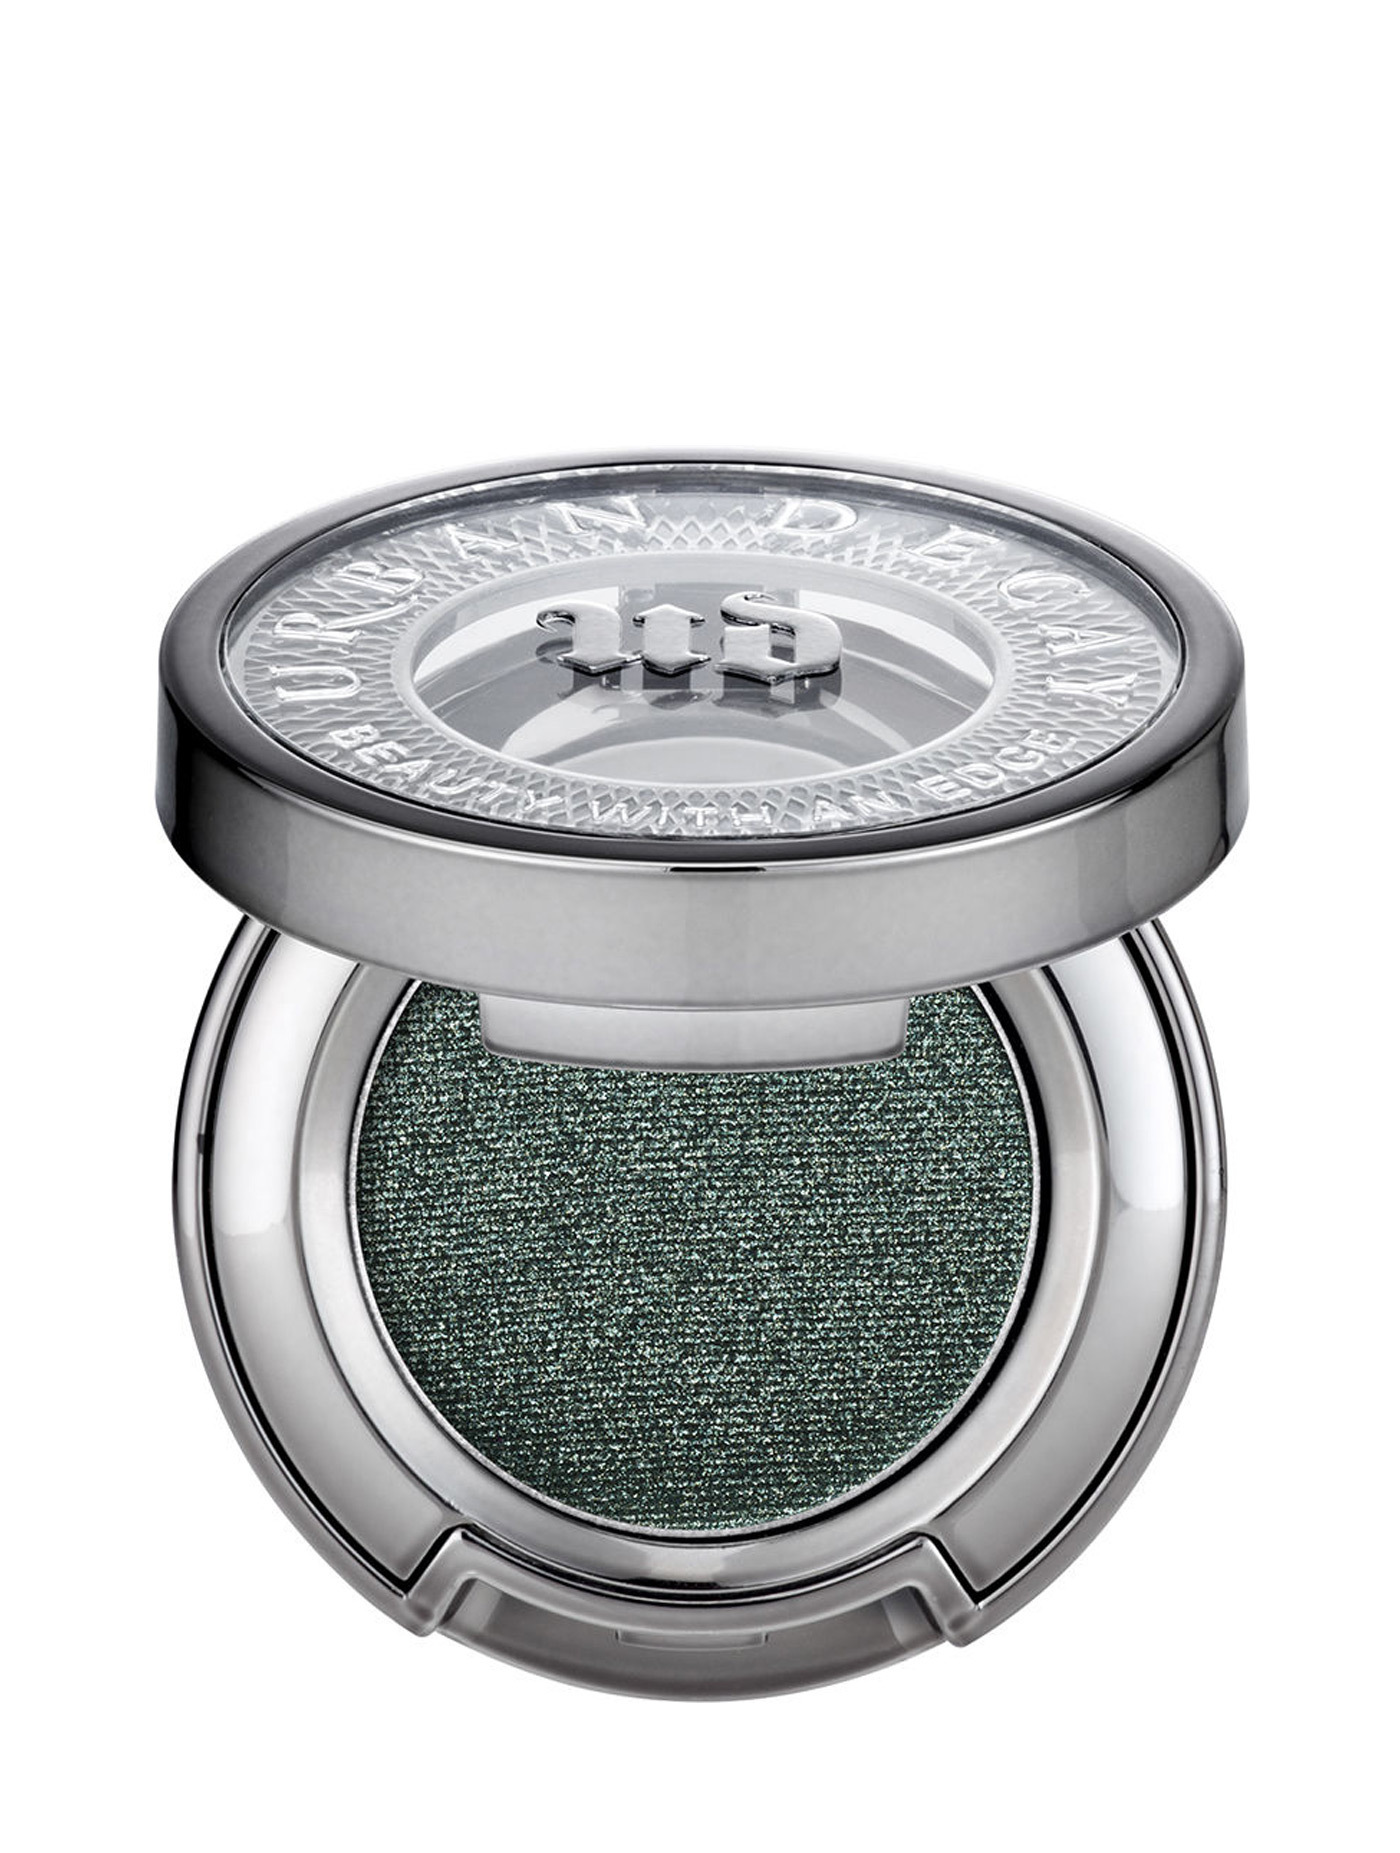 URBAN DECAY Eye Shadow #C-Note (Frosted green) 送料無 追跡有